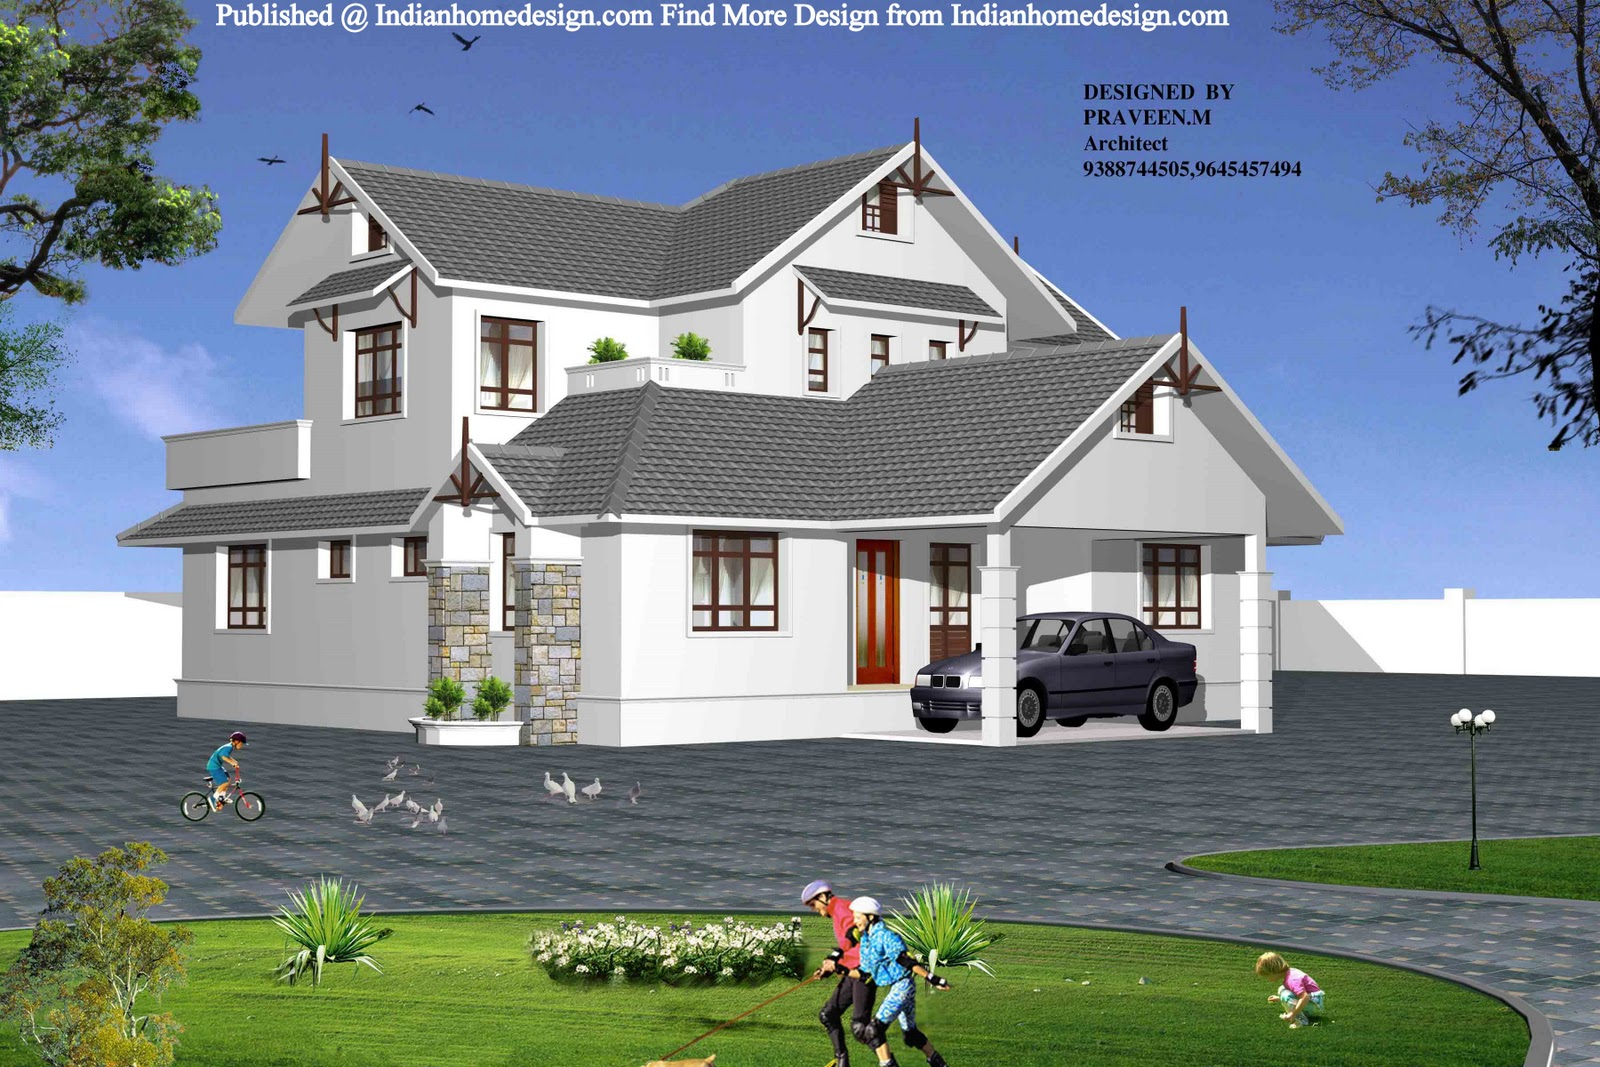 House photos and plans for House photos and plans